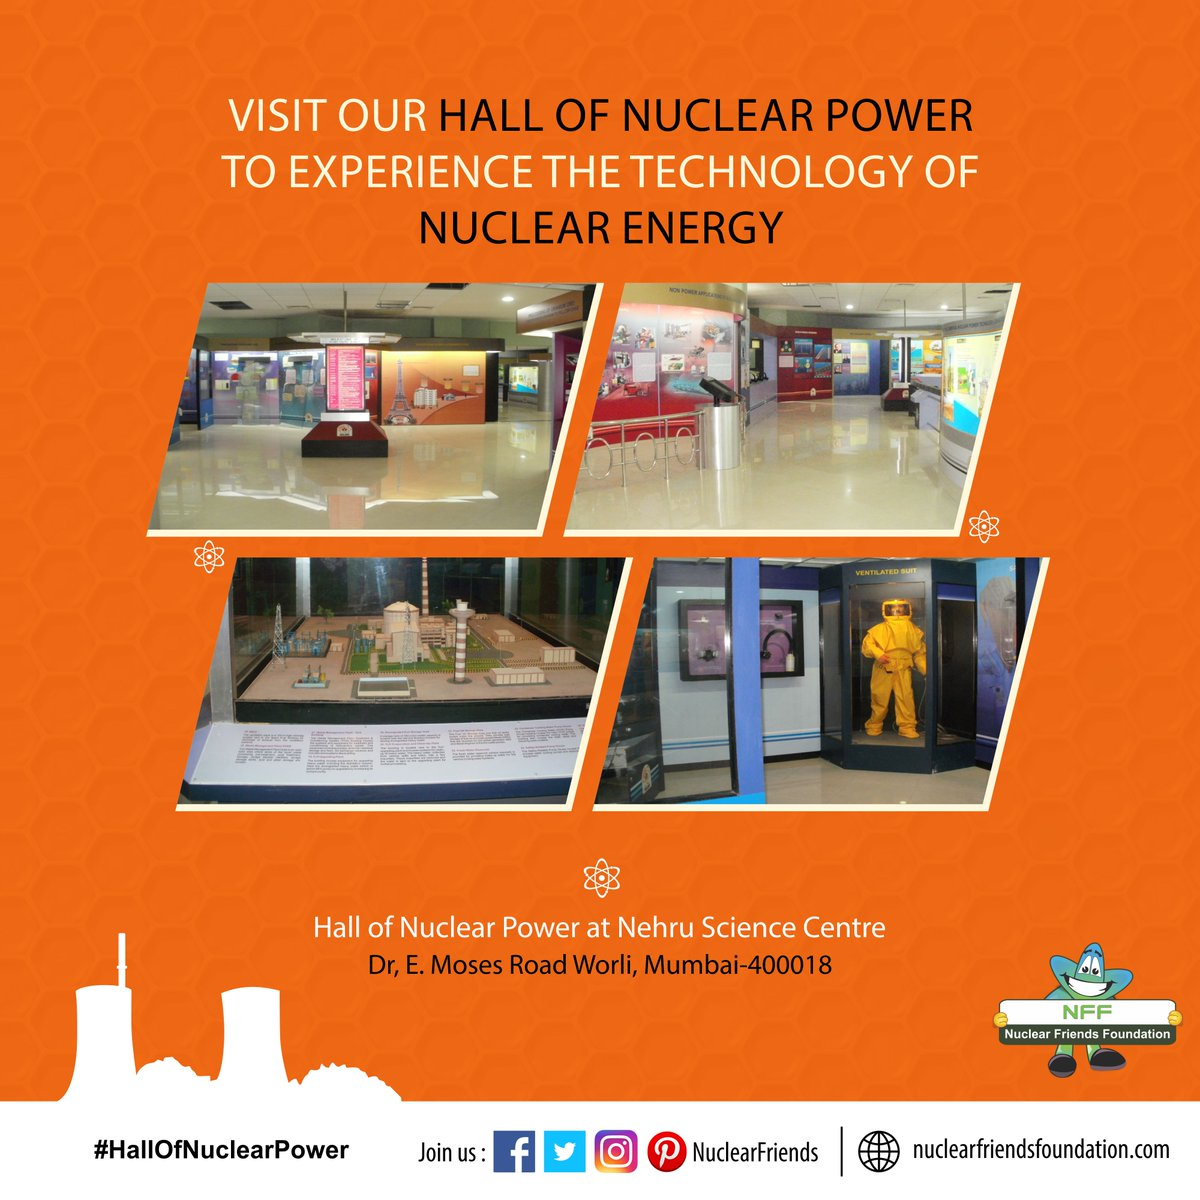 Visit our #Hallofnuclearpower to experience the #Technology of #NuclearEnergy  #NuclearPower #Power #Uranium  #Thorium #NFF<br>http://pic.twitter.com/ds3nUwYsys